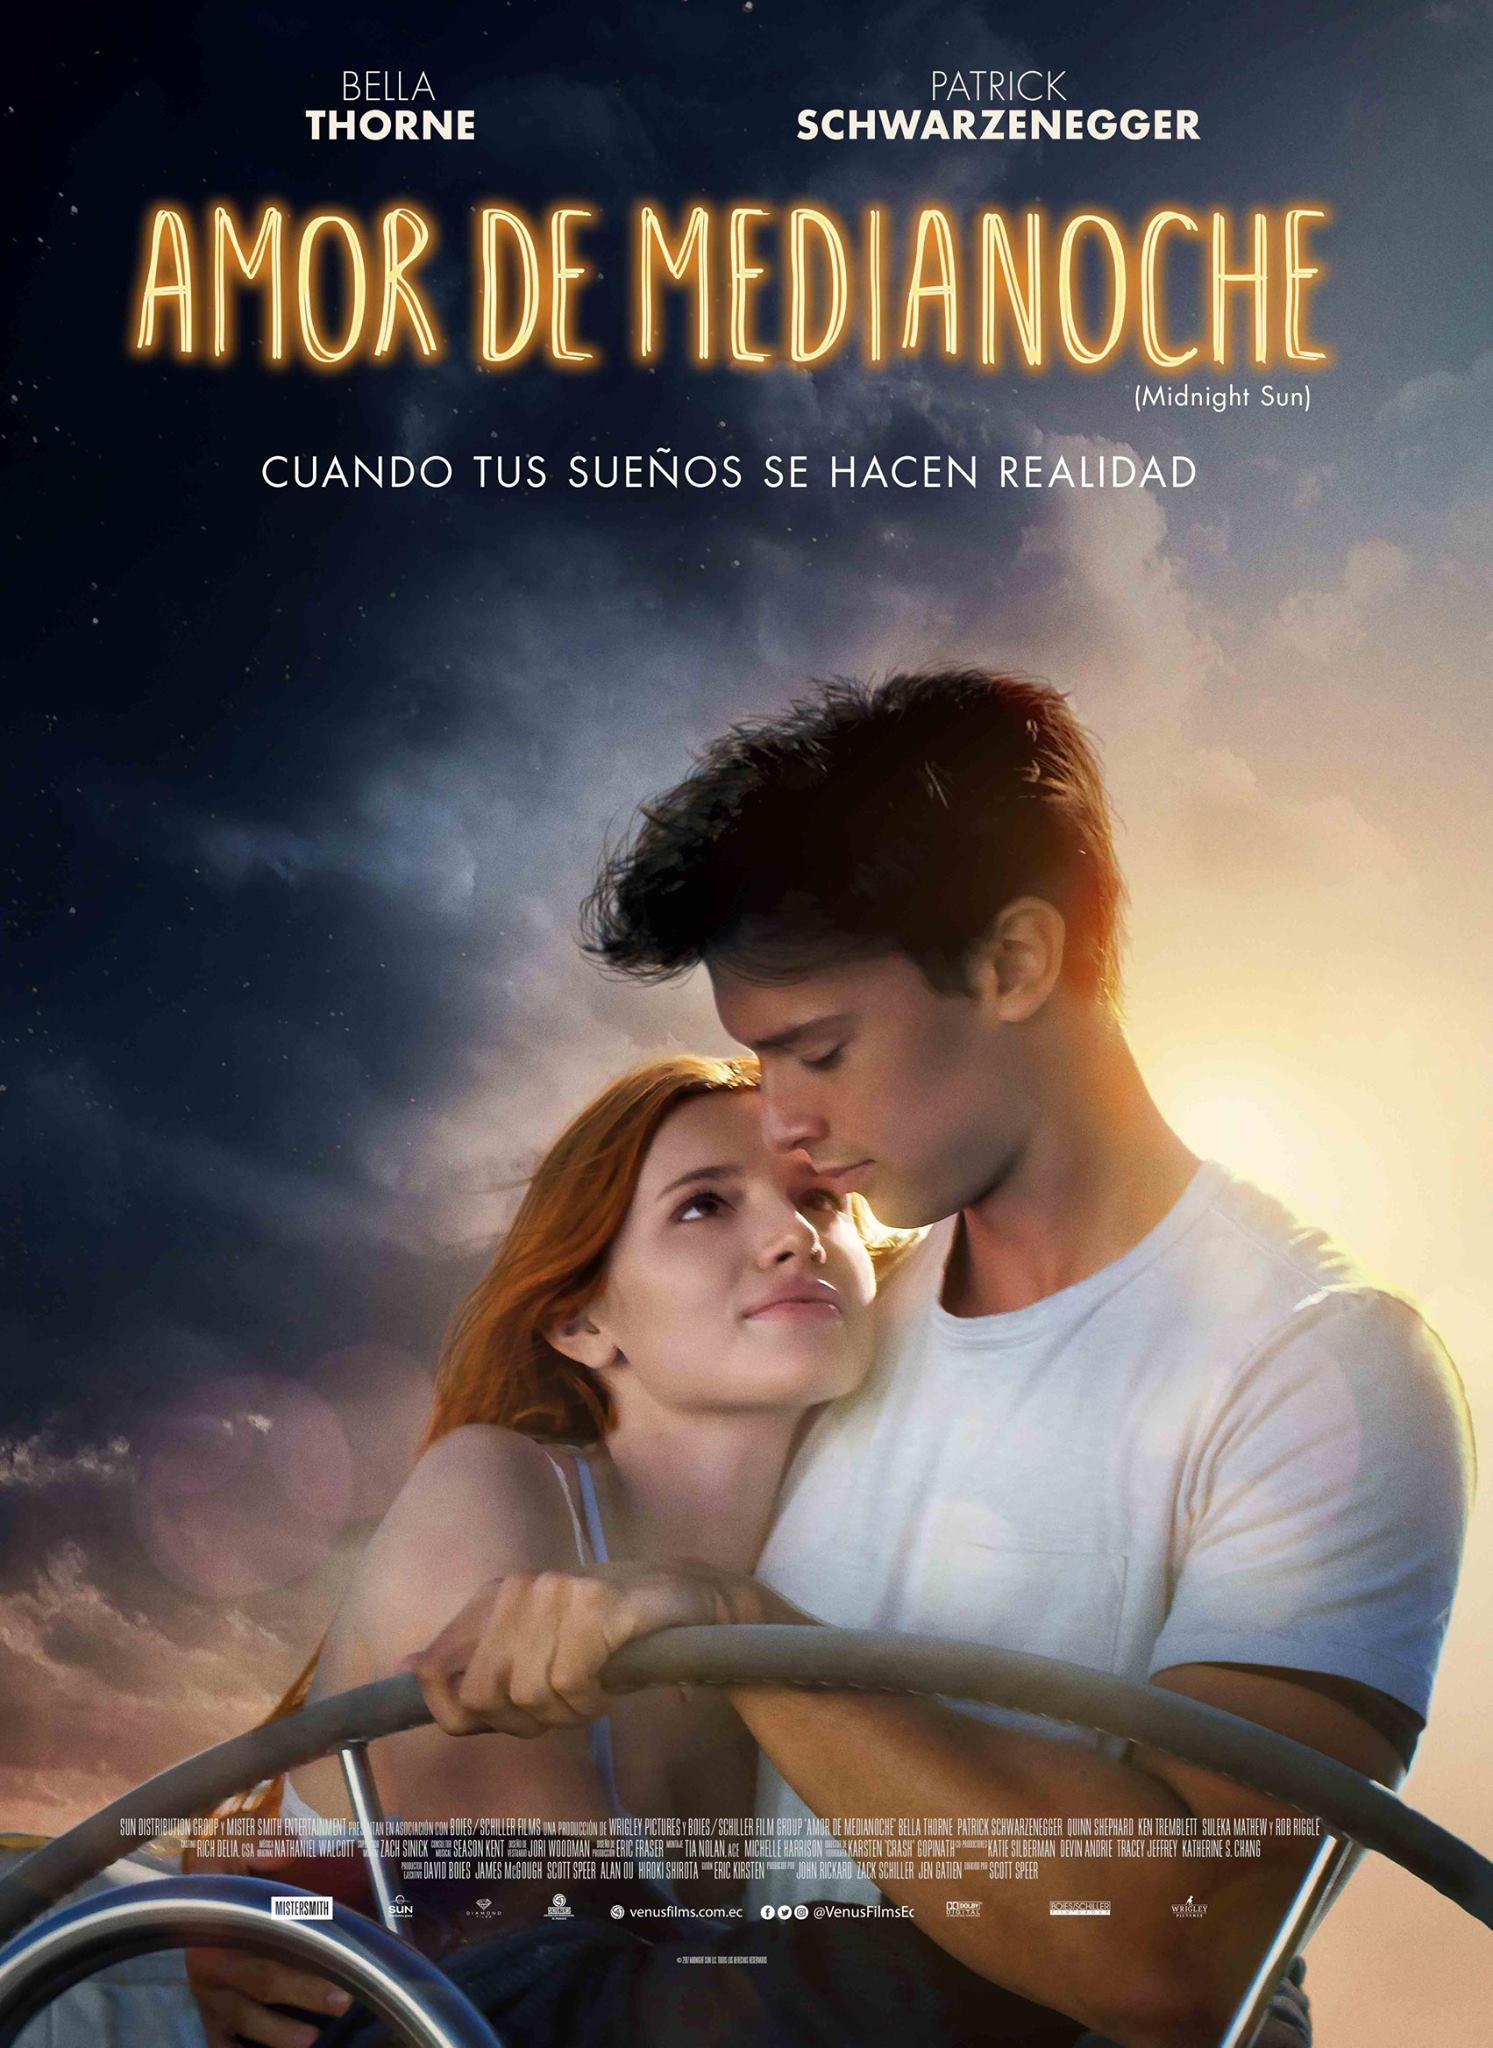 Amor de medianoche | Doblaje Wiki | FANDOM powered by Wikia